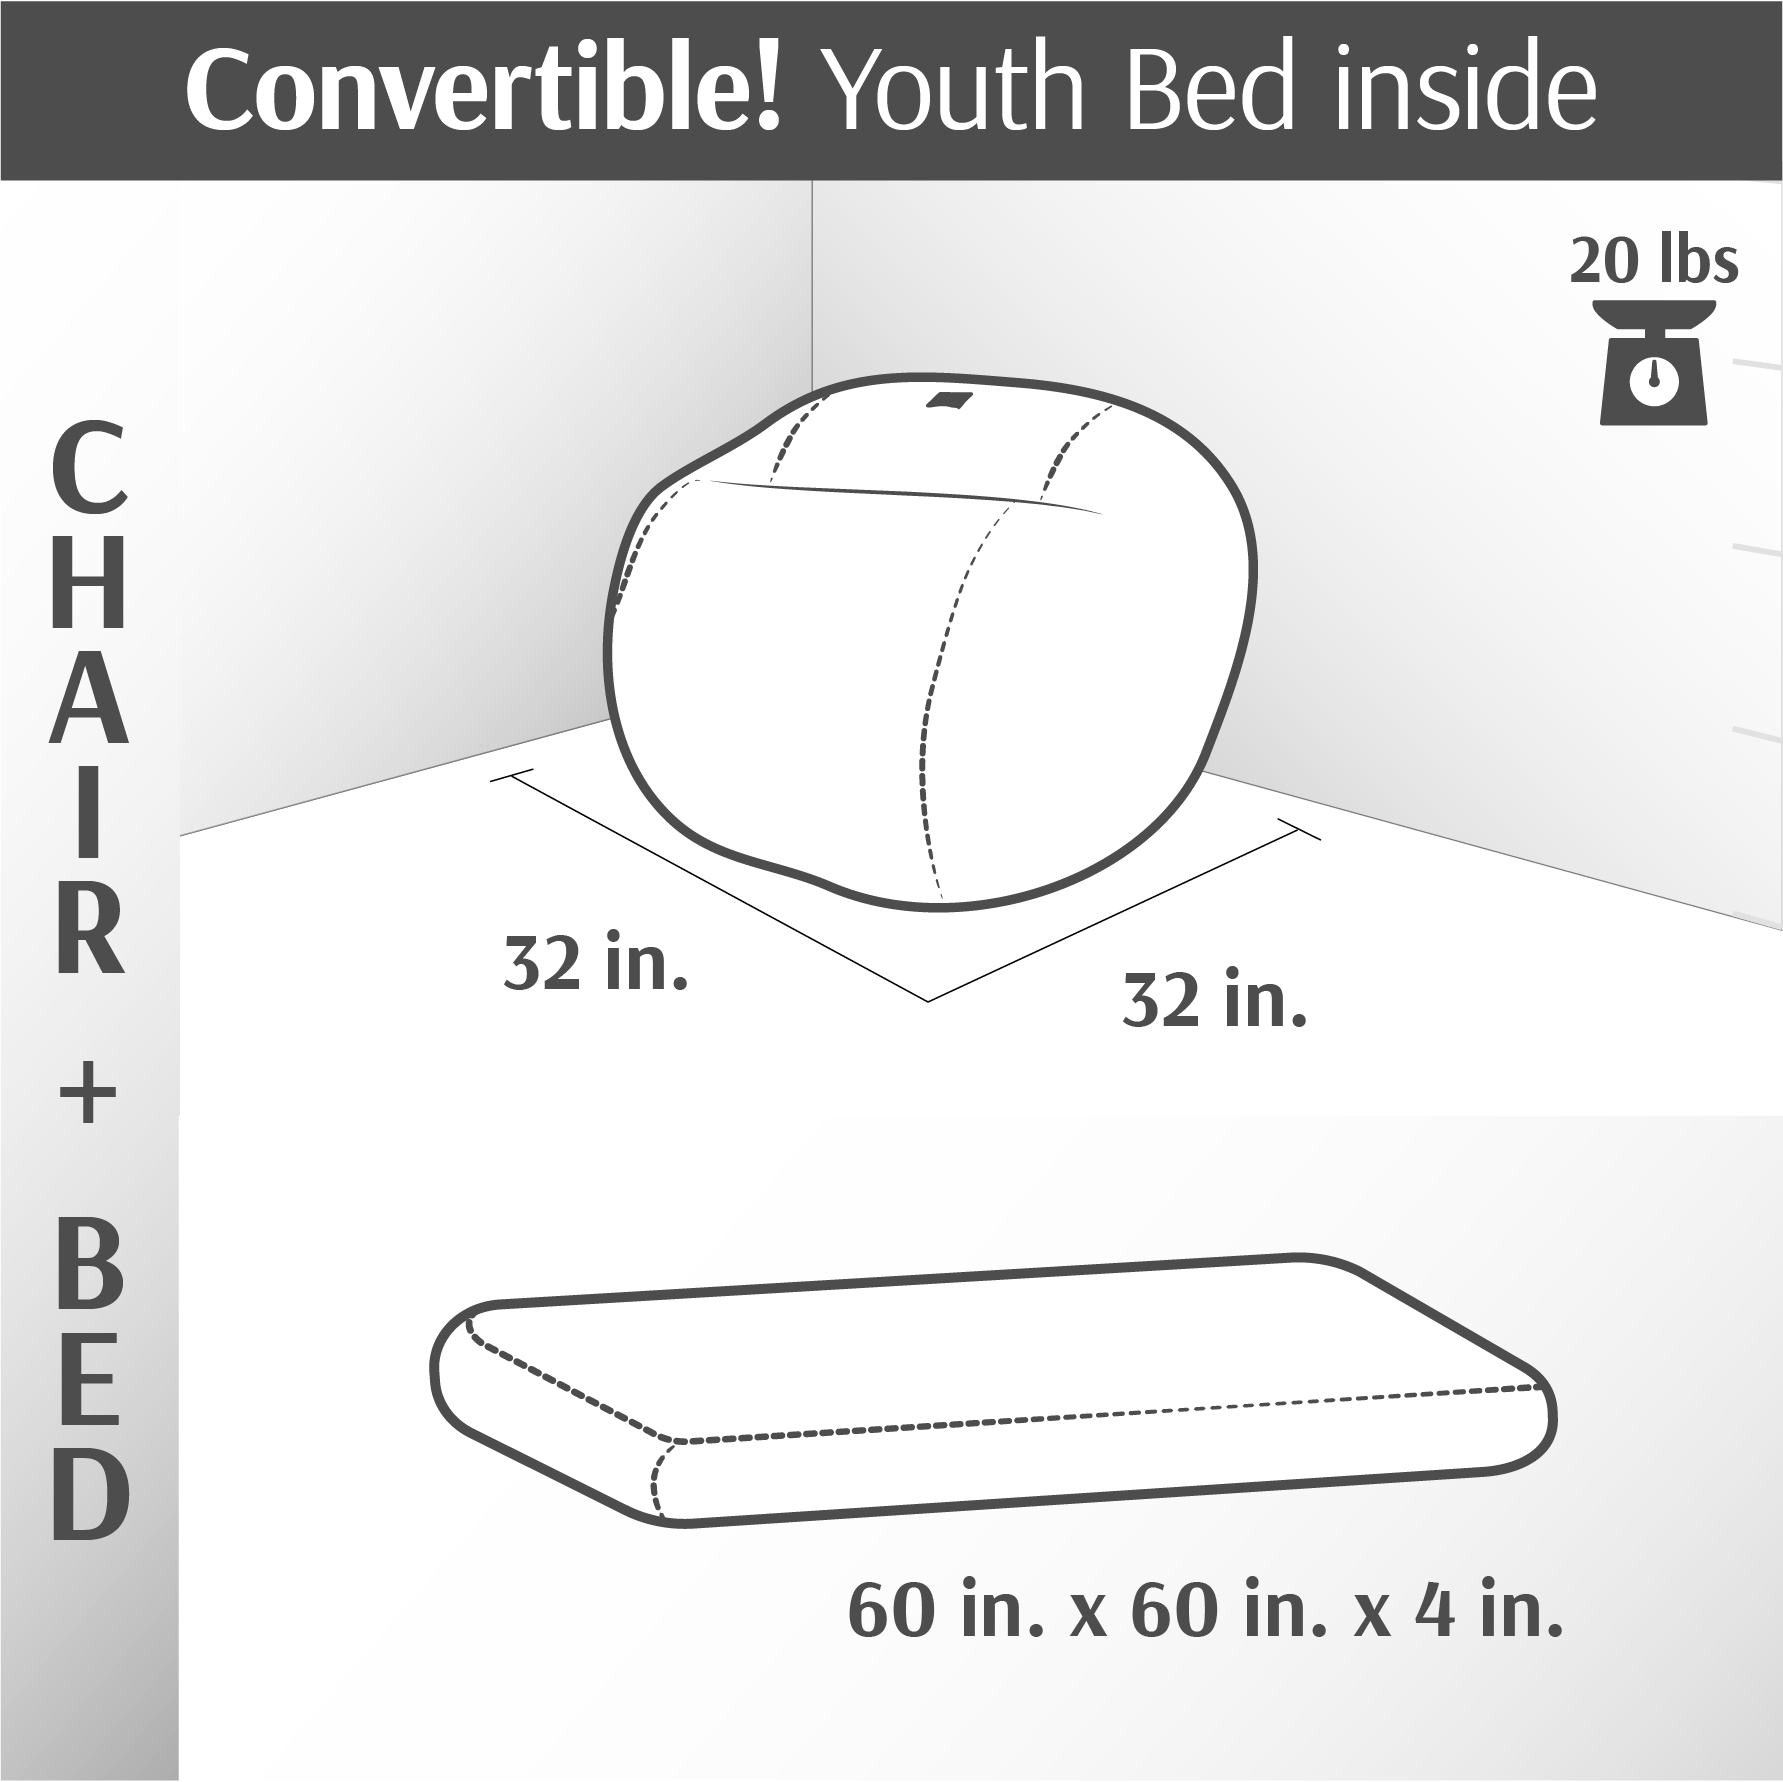 Convertible Bean Bag - Youth Convertible Bean Bag - Corduroy